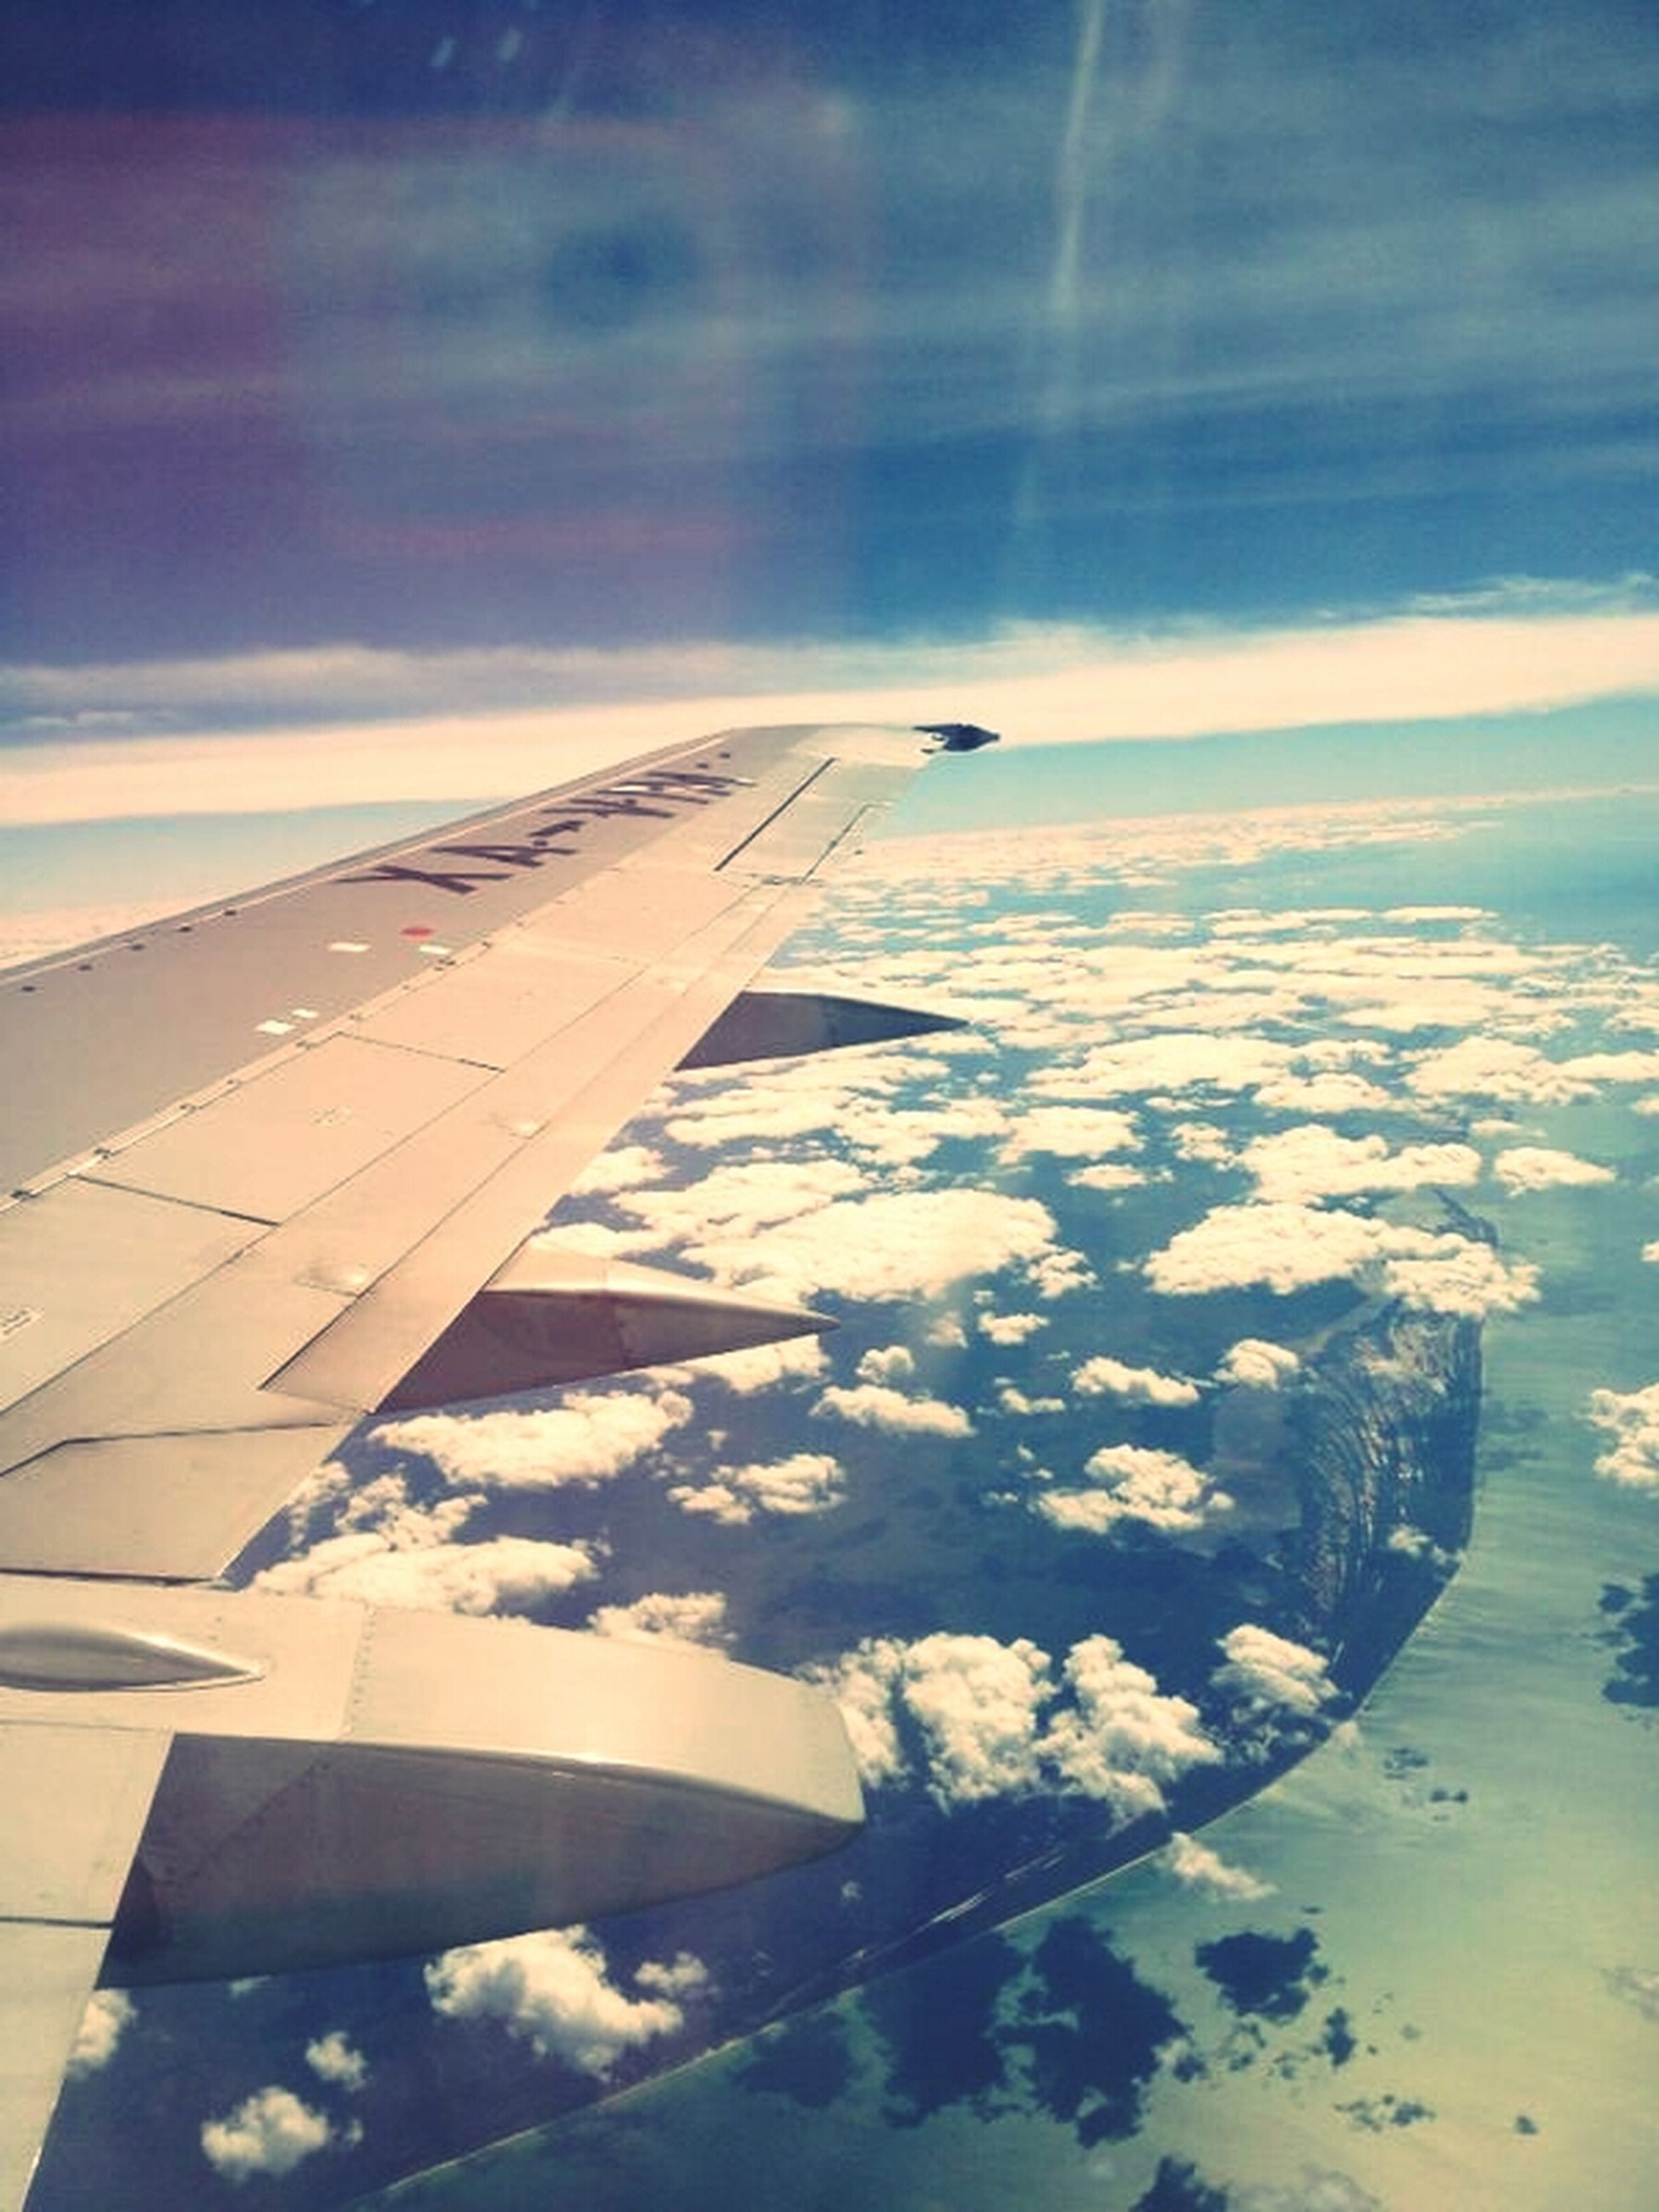 flying, aircraft wing, airplane, transportation, sky, aerial view, air vehicle, part of, cropped, scenics, beauty in nature, cloud - sky, landscape, travel, nature, mode of transport, tranquil scene, tranquility, mid-air, blue